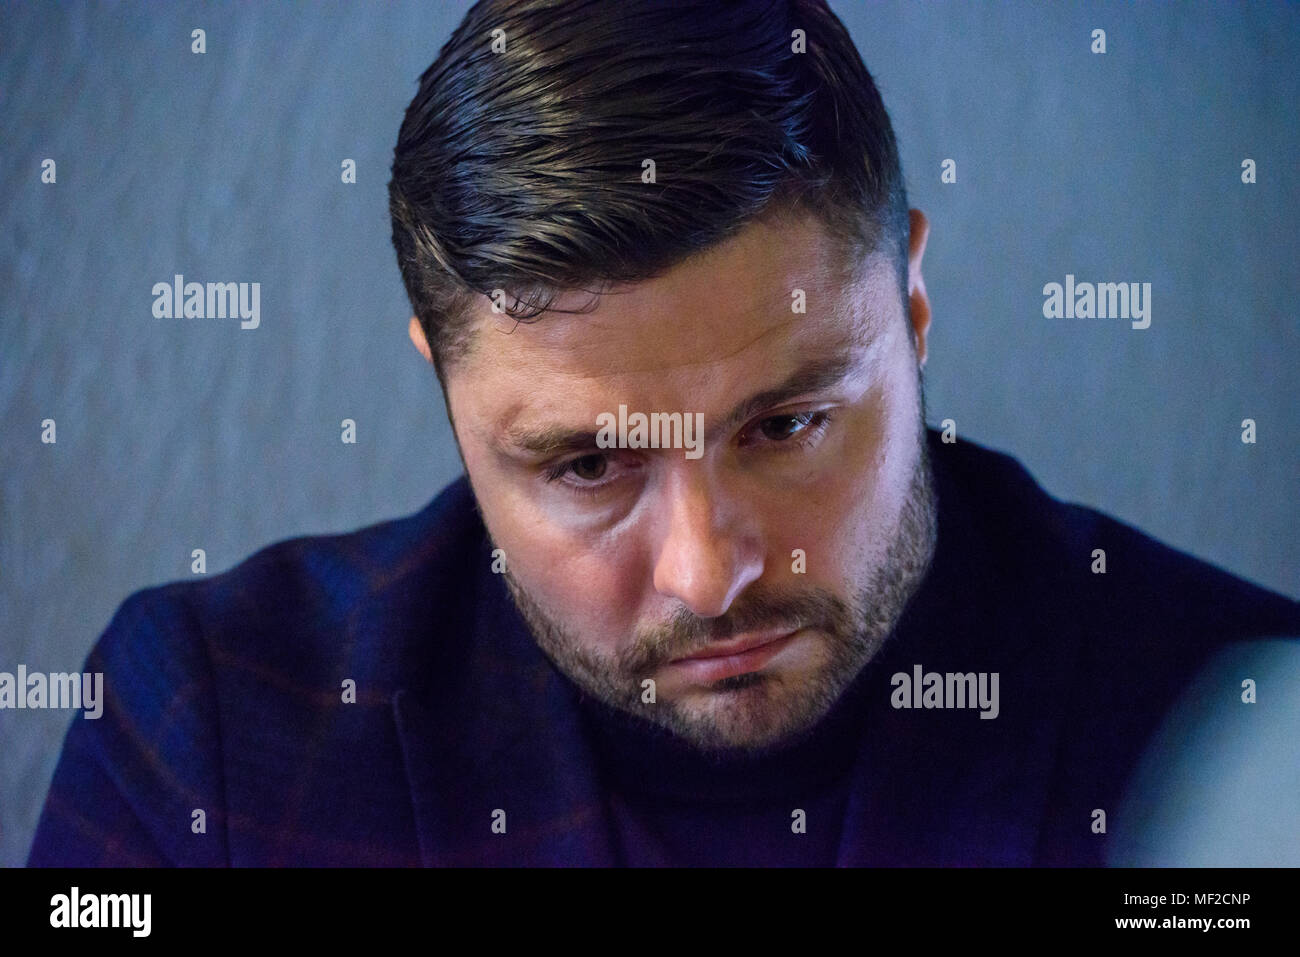 Riga, Latvia. 24.04.2018. RIGA, LATVIA. Maris Verpakovskis, during press conference of former Latvian professional football player Kaspars Gorkss, candidate for LFF president press conference before elections for President of Latvian Football Federation. Credit: Gints Ivuskans/Alamy Live News - Stock Image